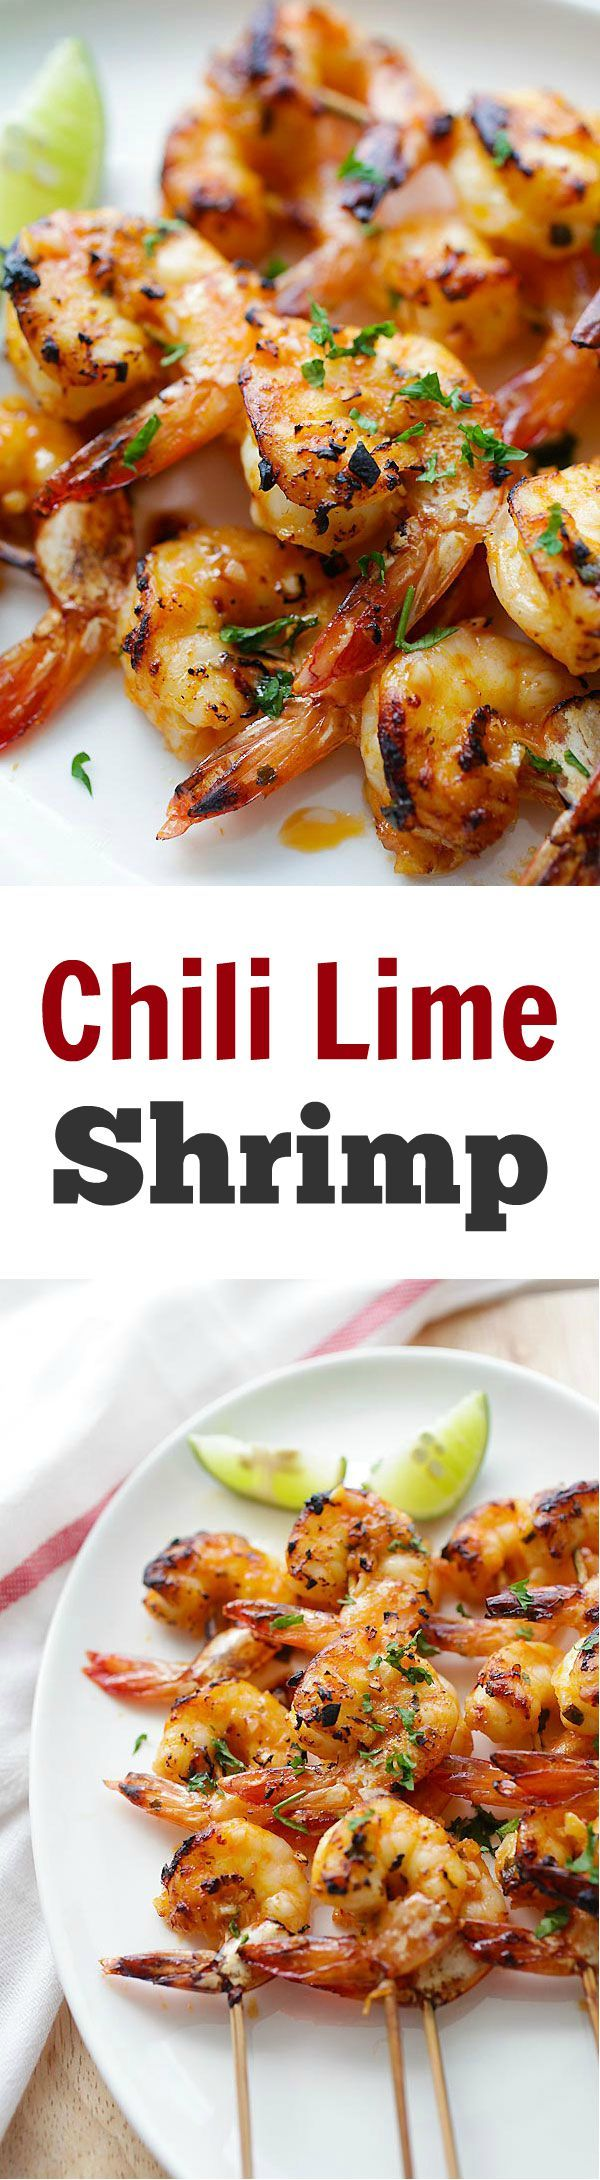 Easy healthy grilled shrimp recipes